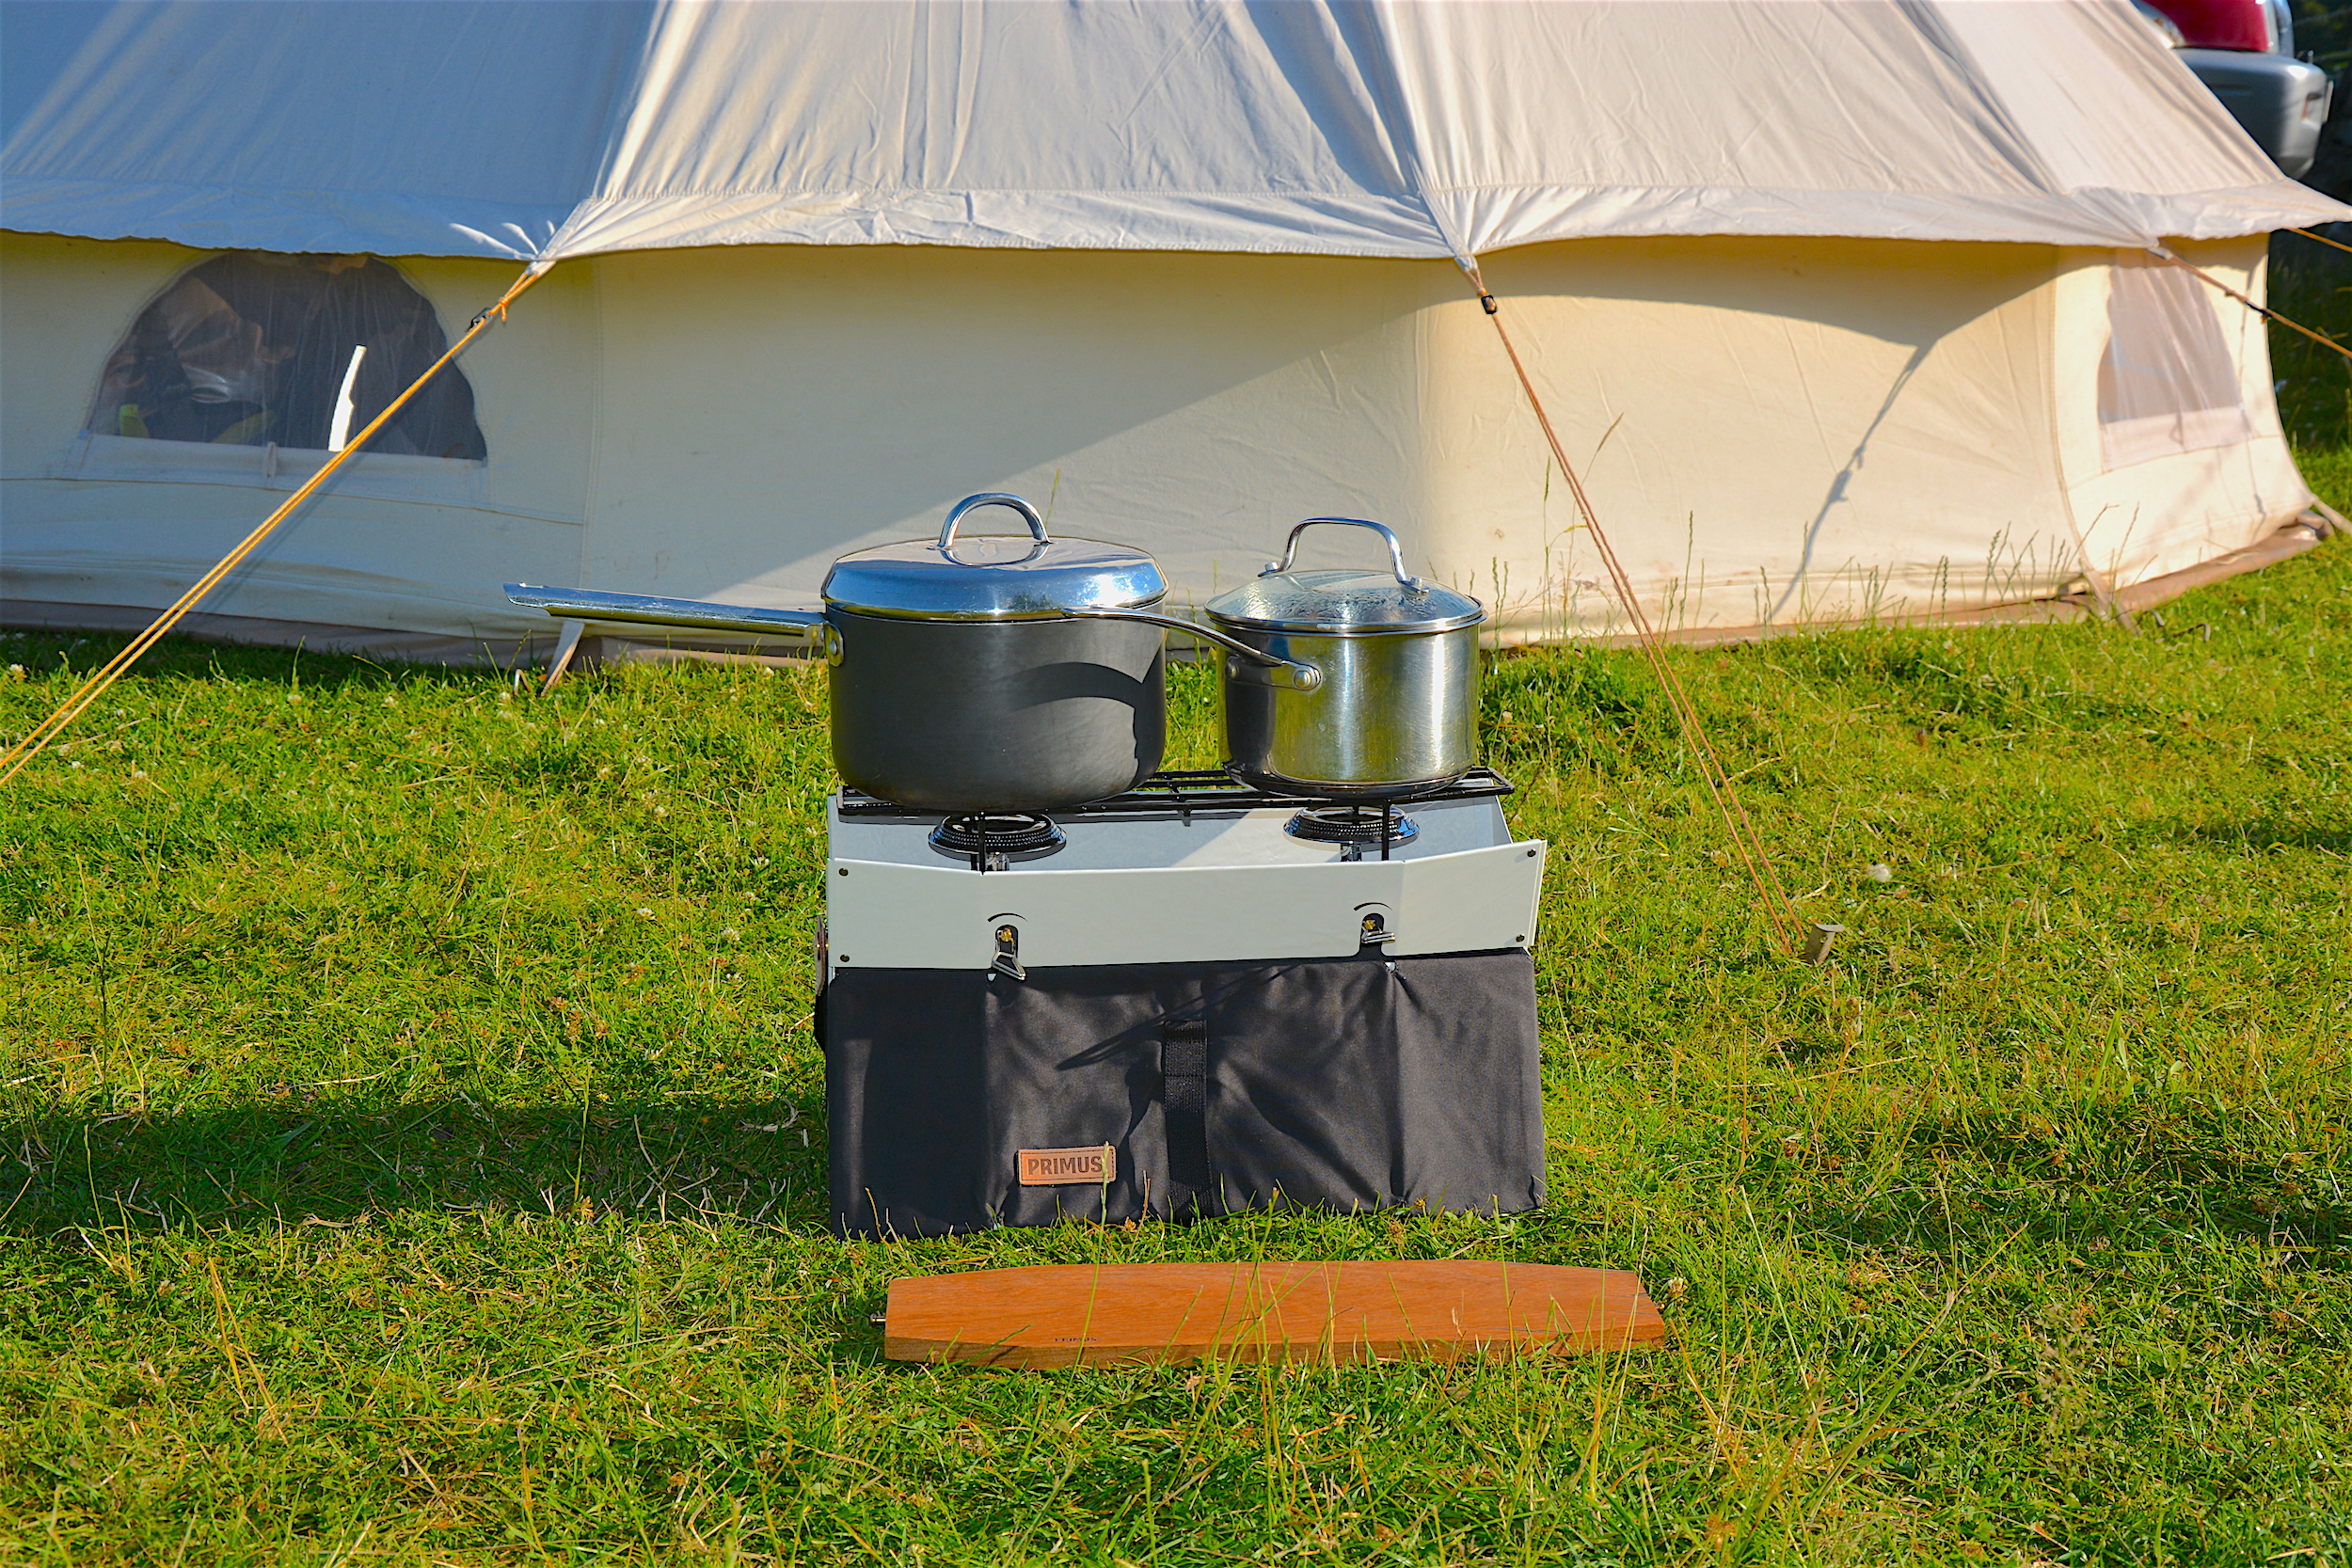 The Primus Onja stove supporting pans